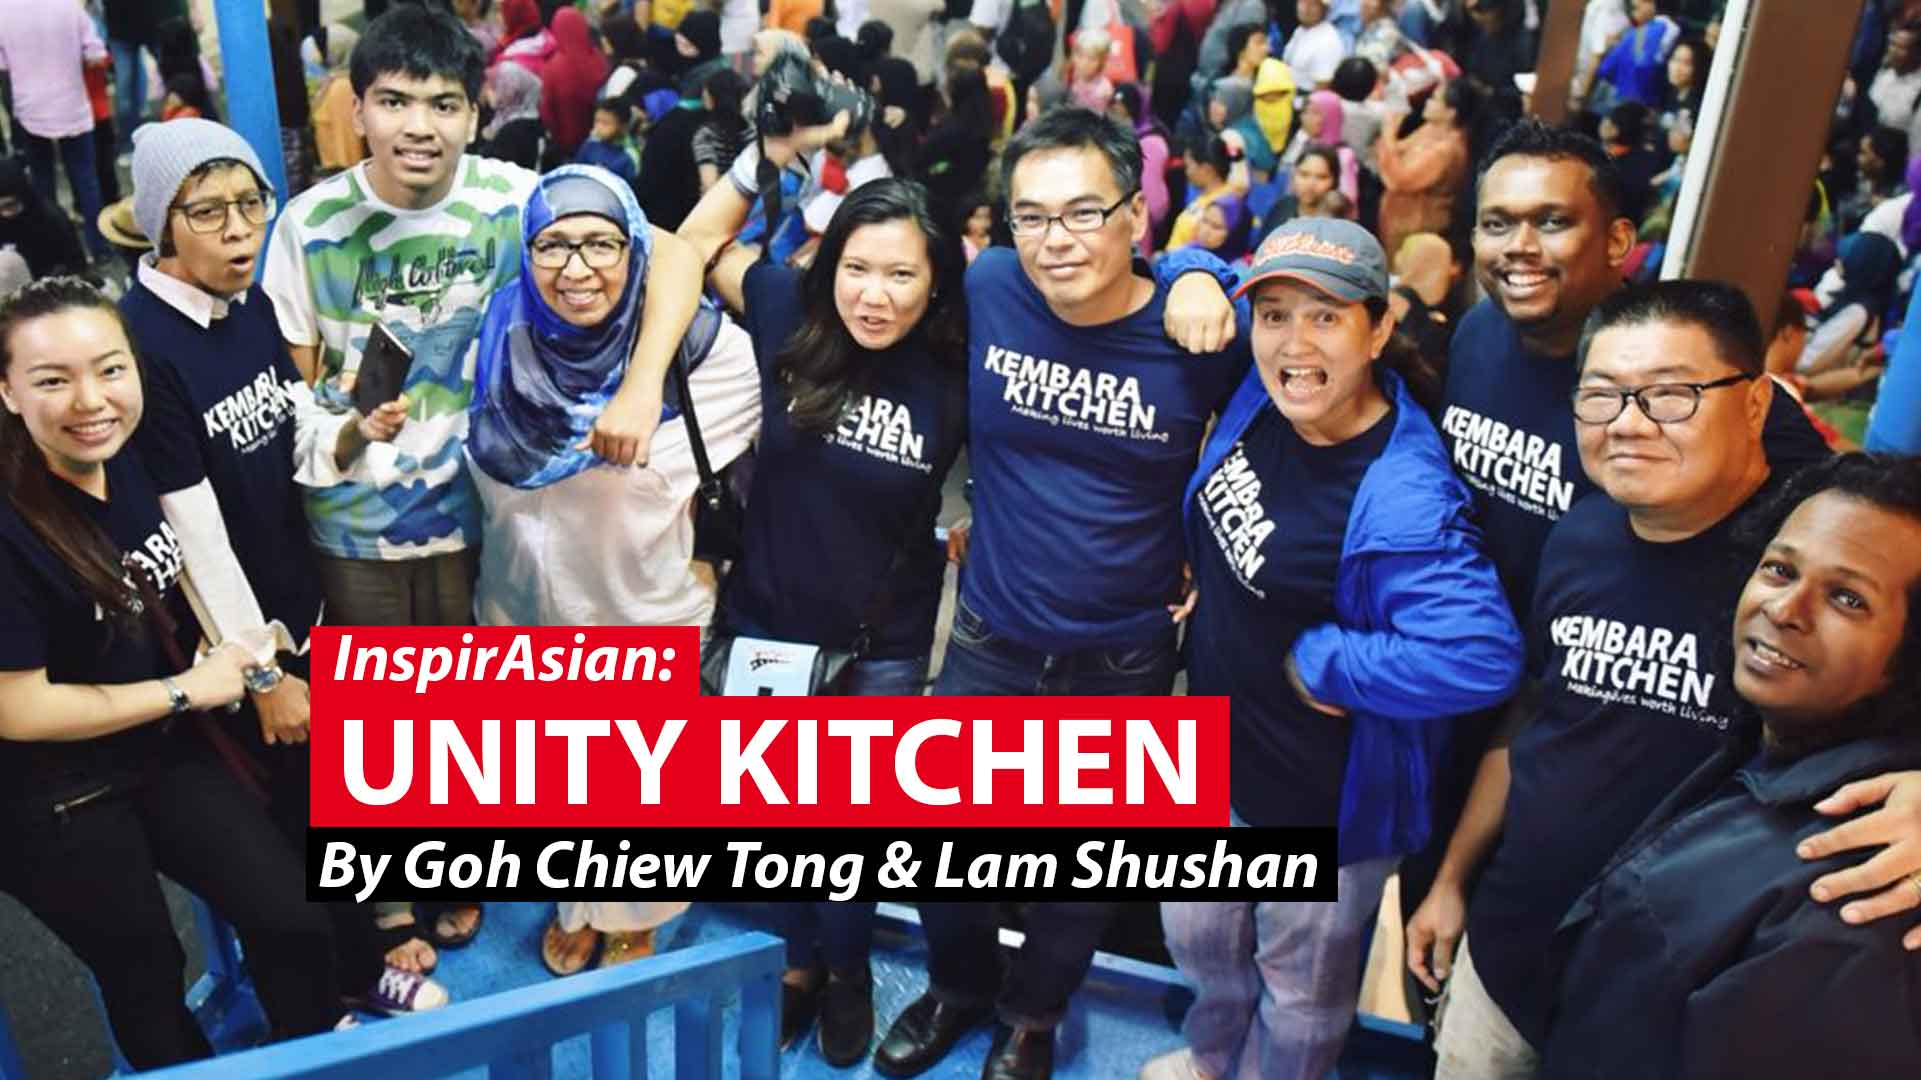 Unity kitchen: Rallying to help feed Malaysia's hungry